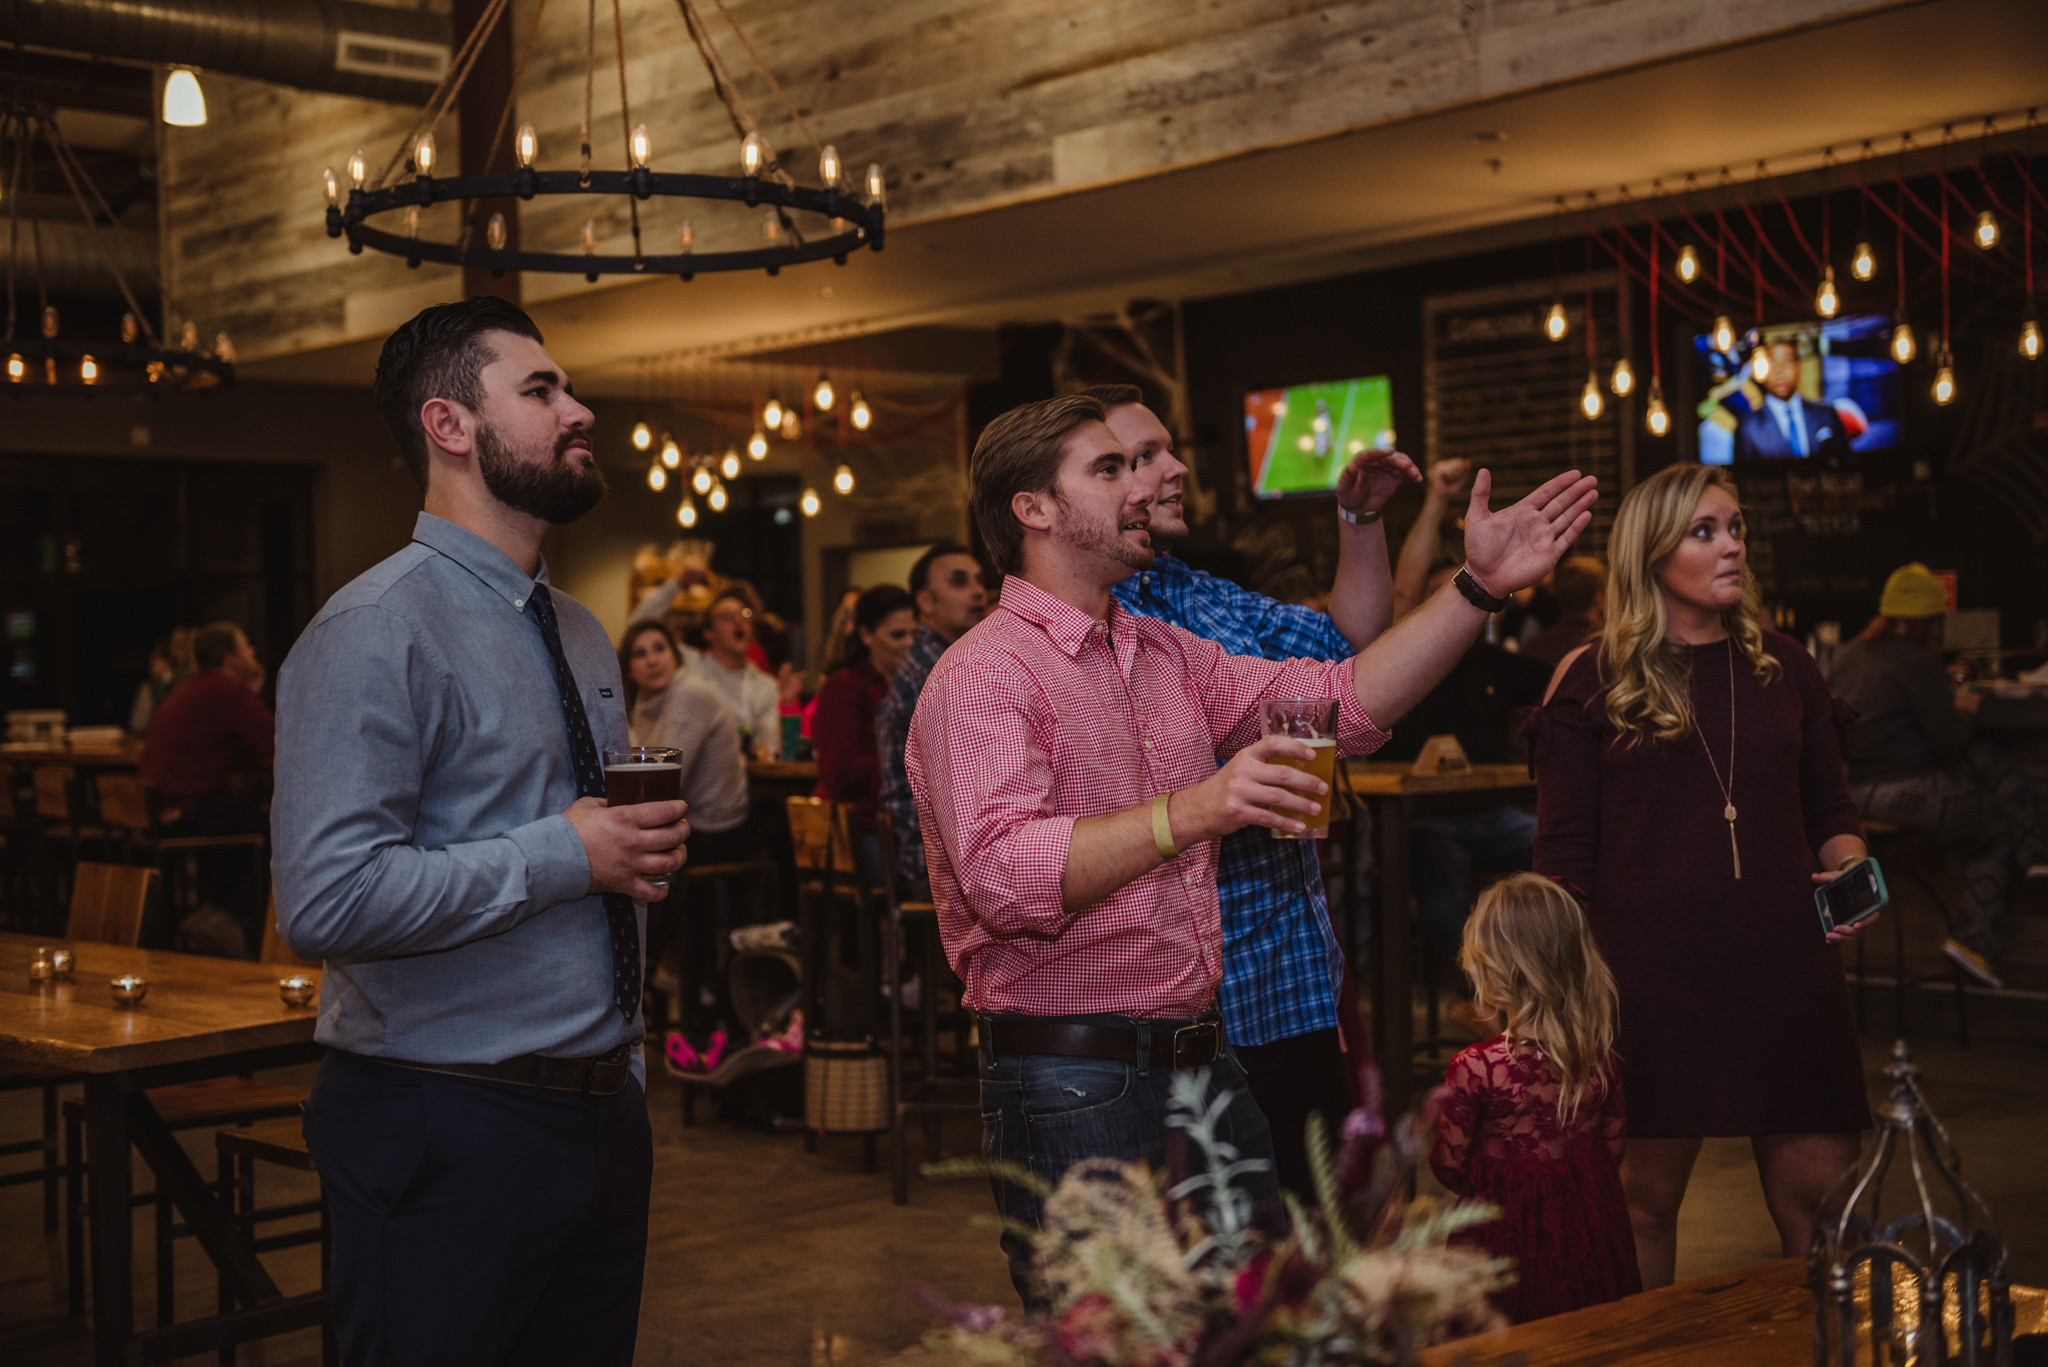 guests-at-the-brewery-cheering-for-ncstate-against-clemson-during-the-reception.jpg